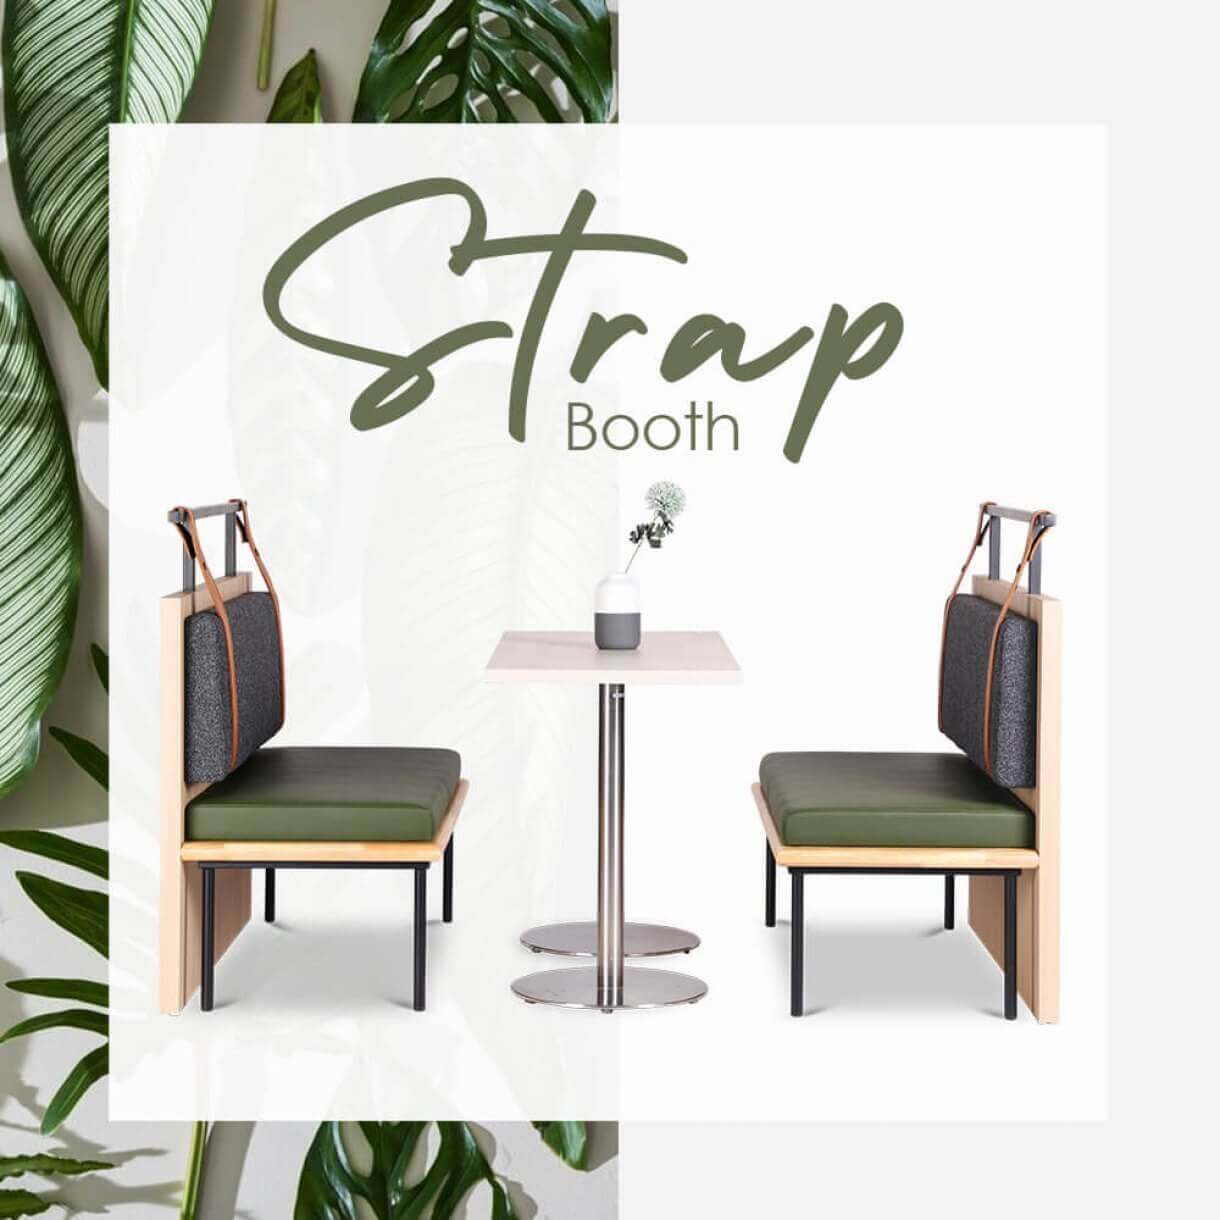 How to Practice Social Distancing at the Restaurant with Booth Seatings - Comfort Furniture